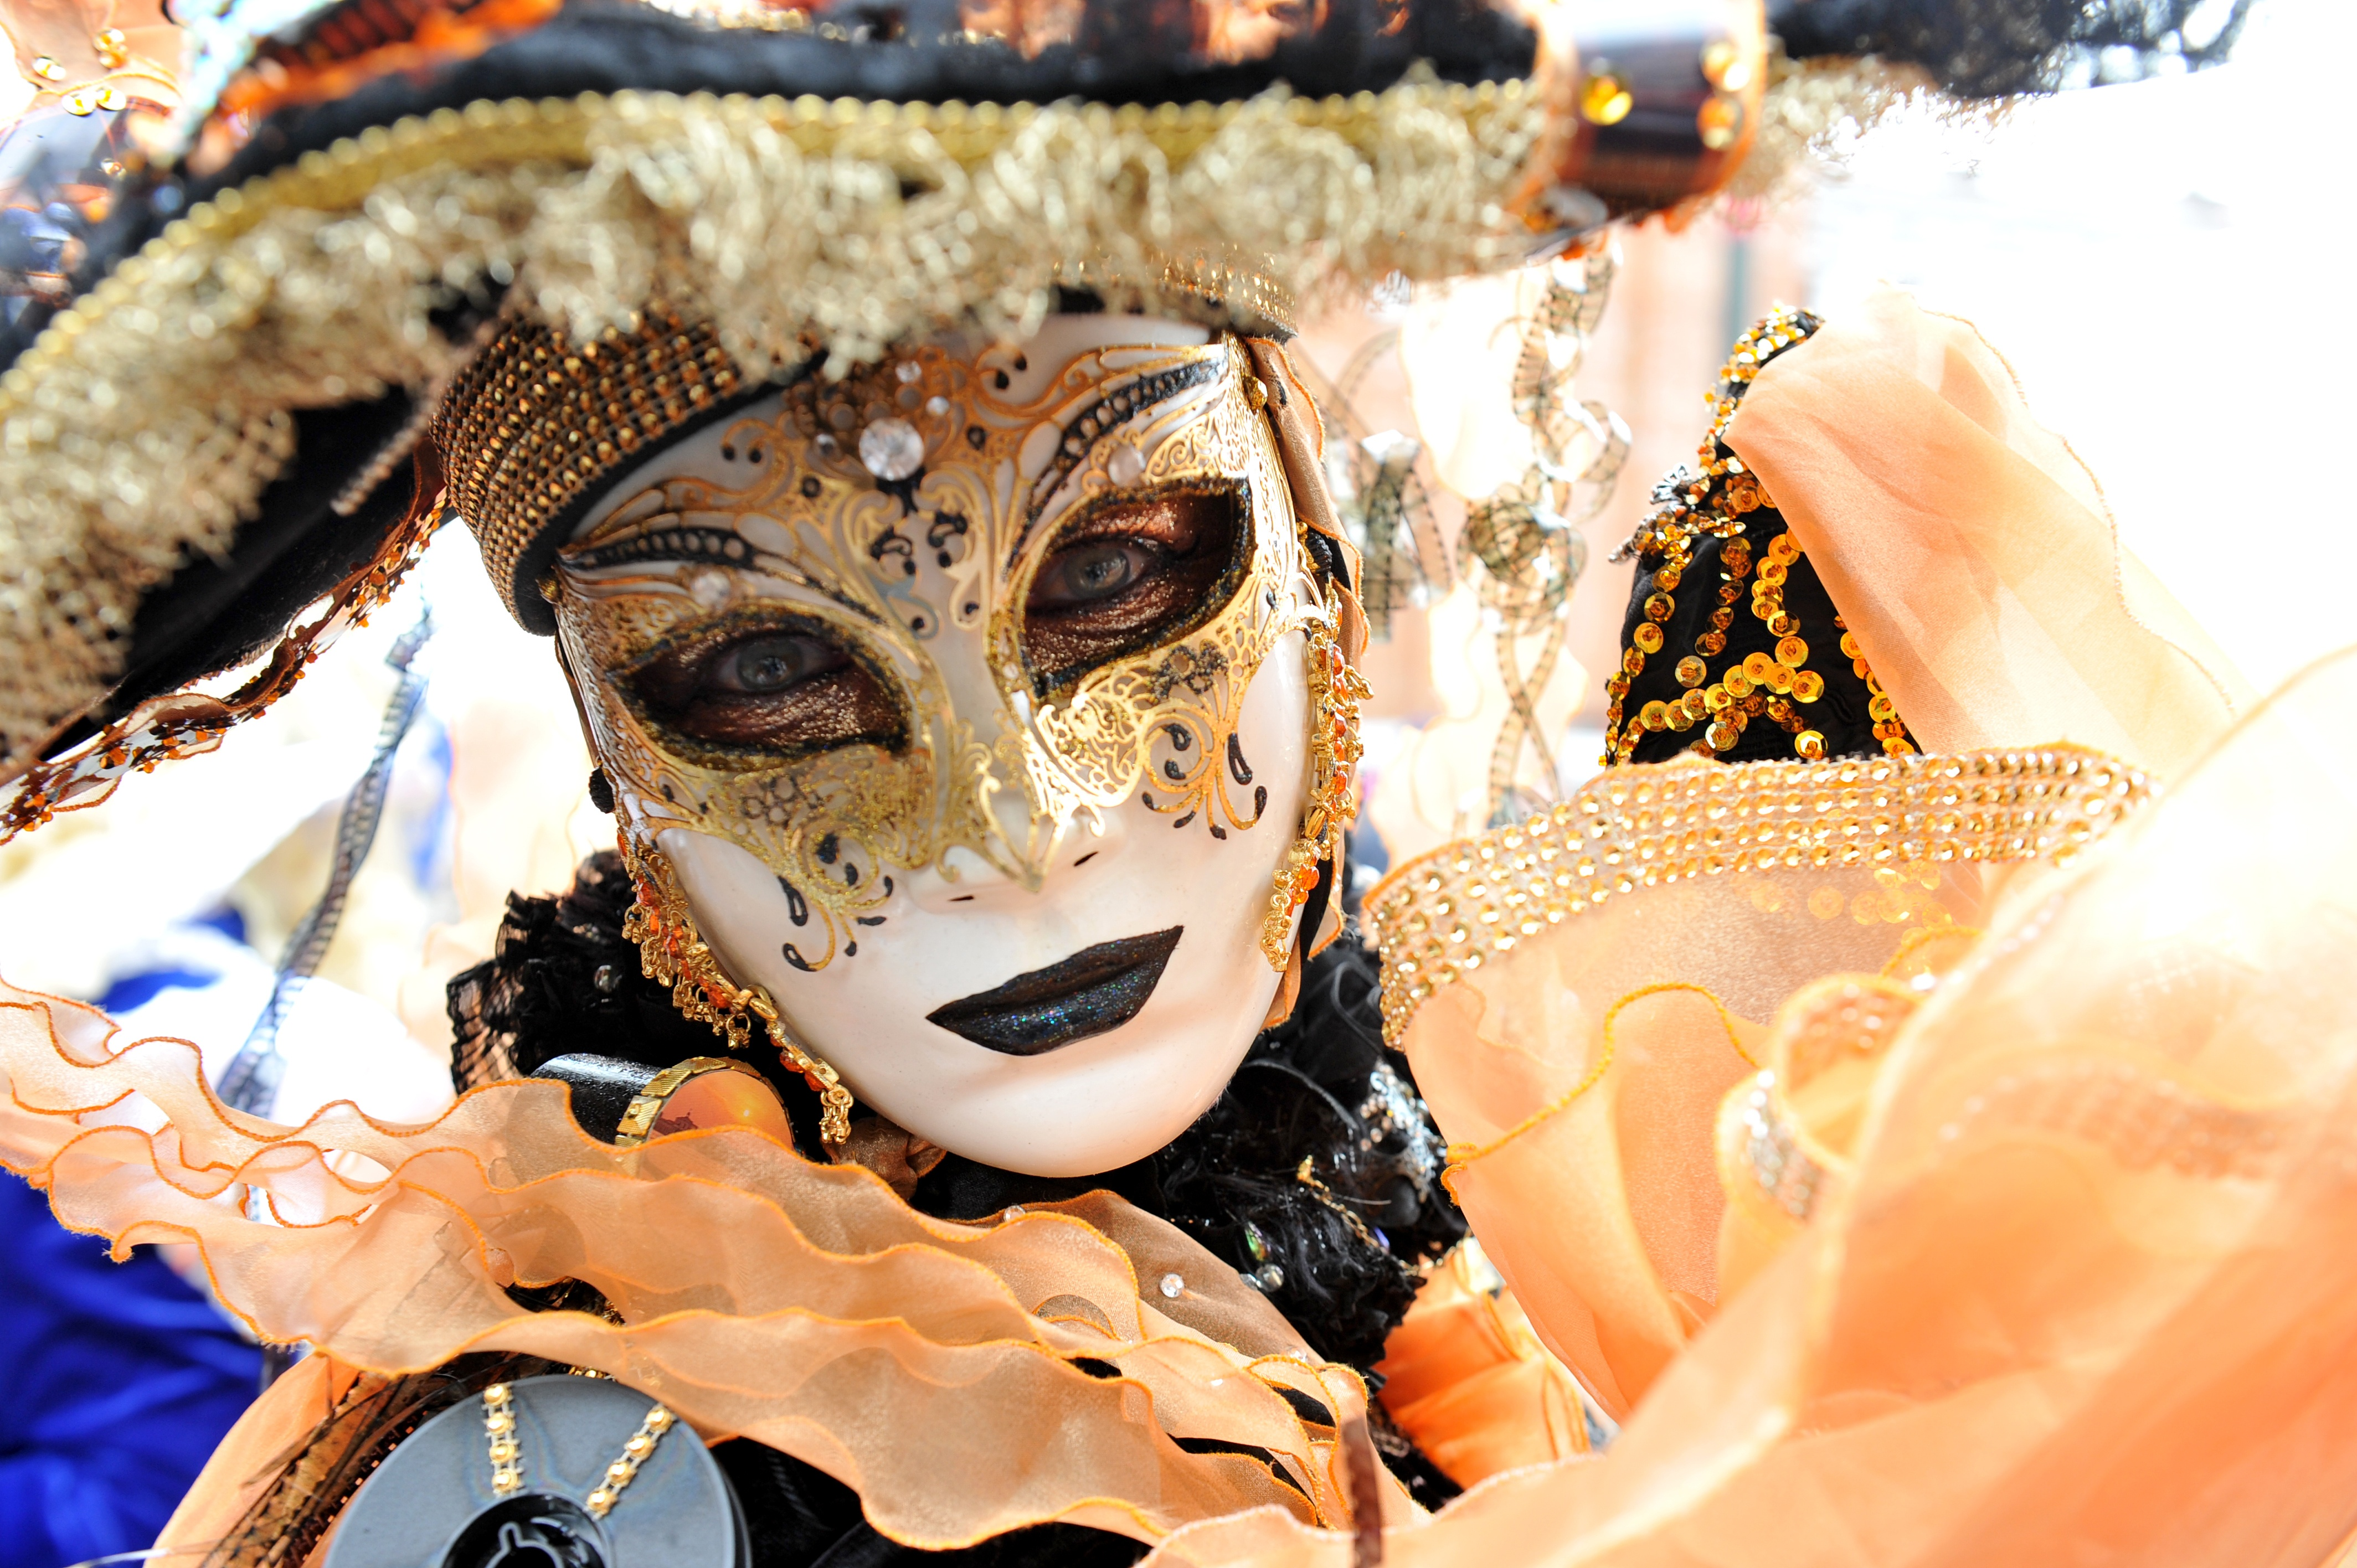 A woman wearing a white and gold Venetian mask for the Carnival of Venice.